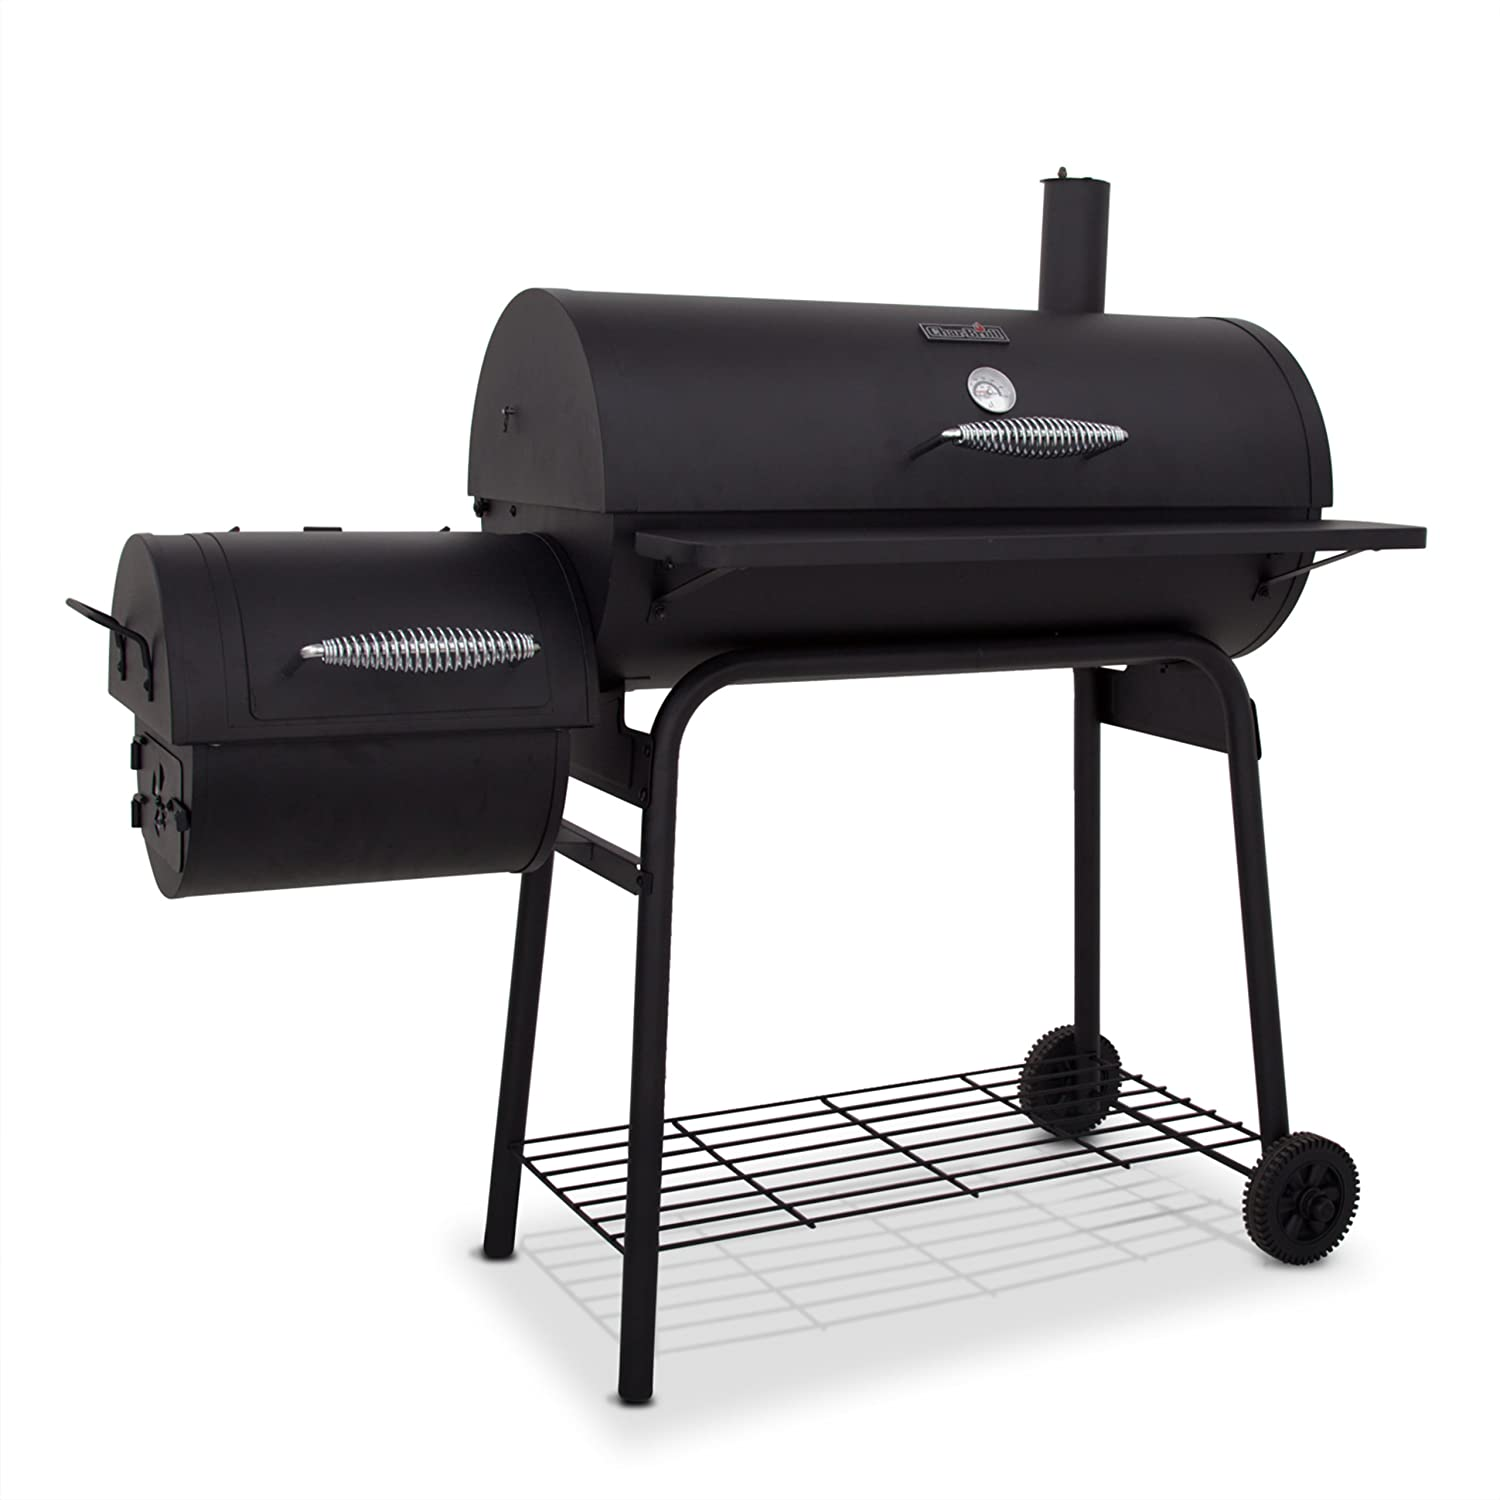 char broil american gourmet 400 series offset smoker outdoor bbq charcoal grill ebay. Black Bedroom Furniture Sets. Home Design Ideas